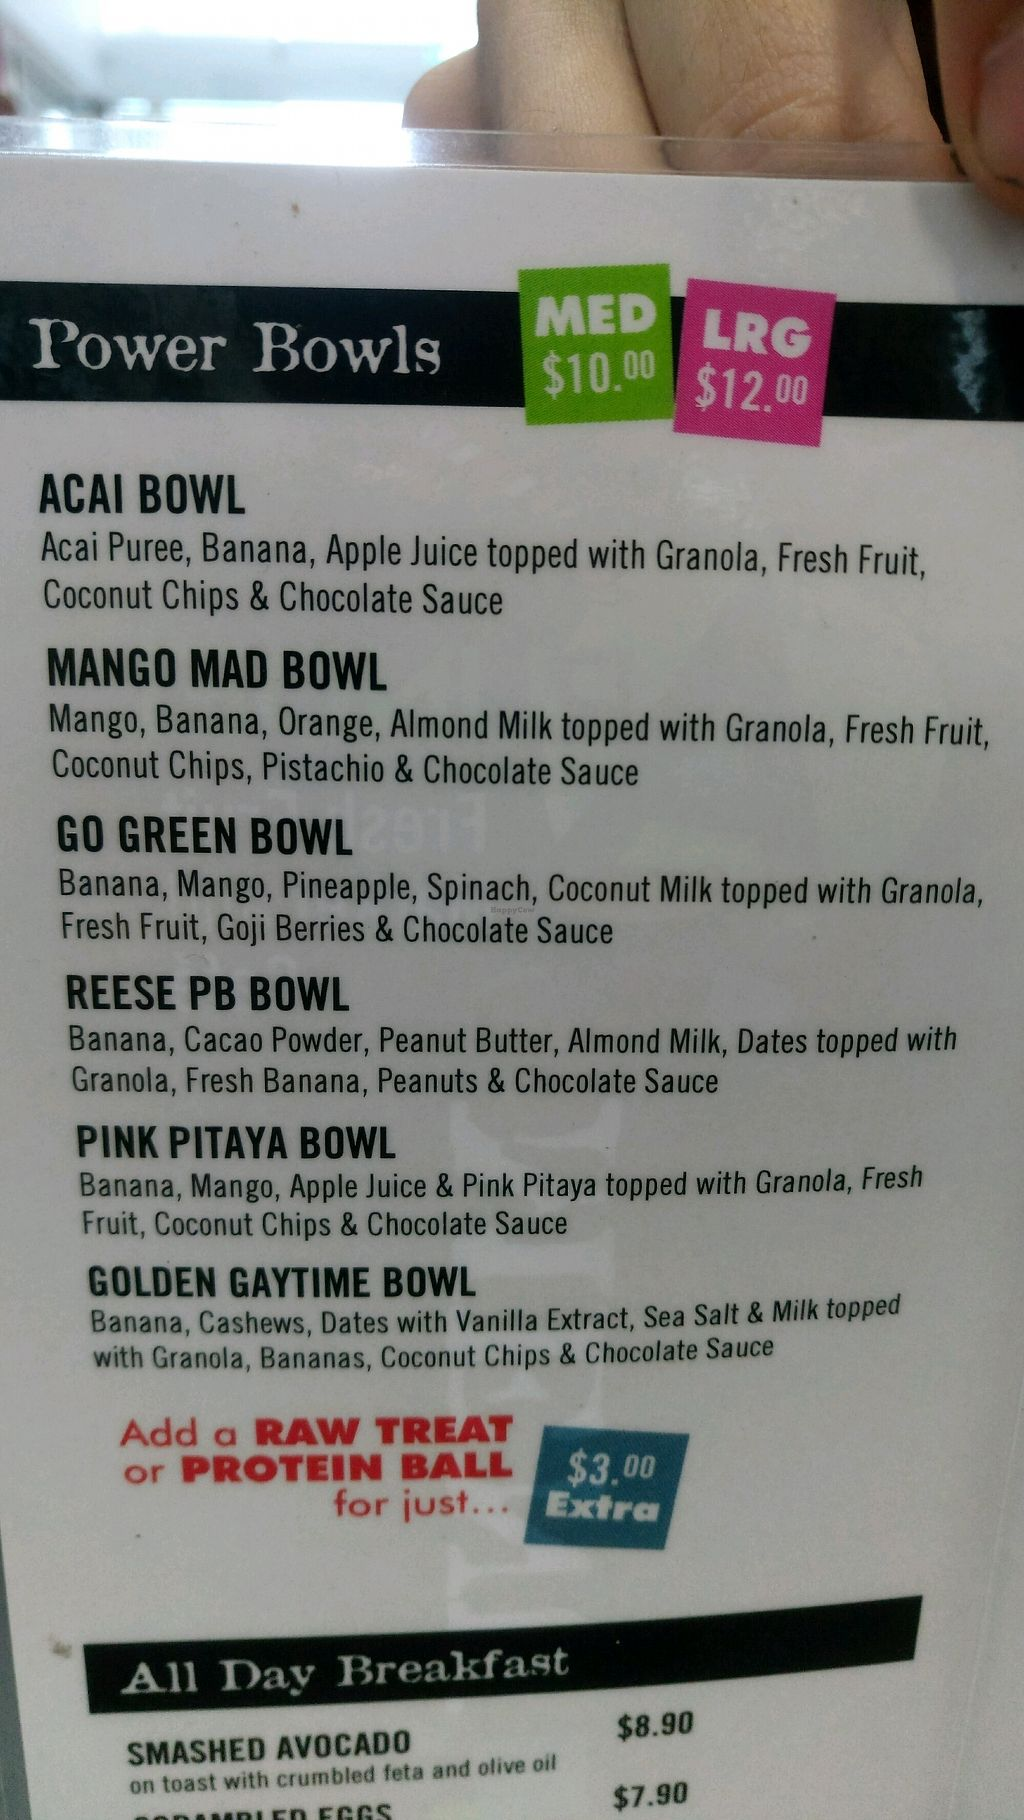 "Photo of CLOSED: Arundel Fresh Fruit Market  by <a href=""/members/profile/AliGlohe"">AliGlohe</a> <br/>Power bowl menu <br/> September 21, 2017  - <a href='/contact/abuse/image/101386/306929'>Report</a>"